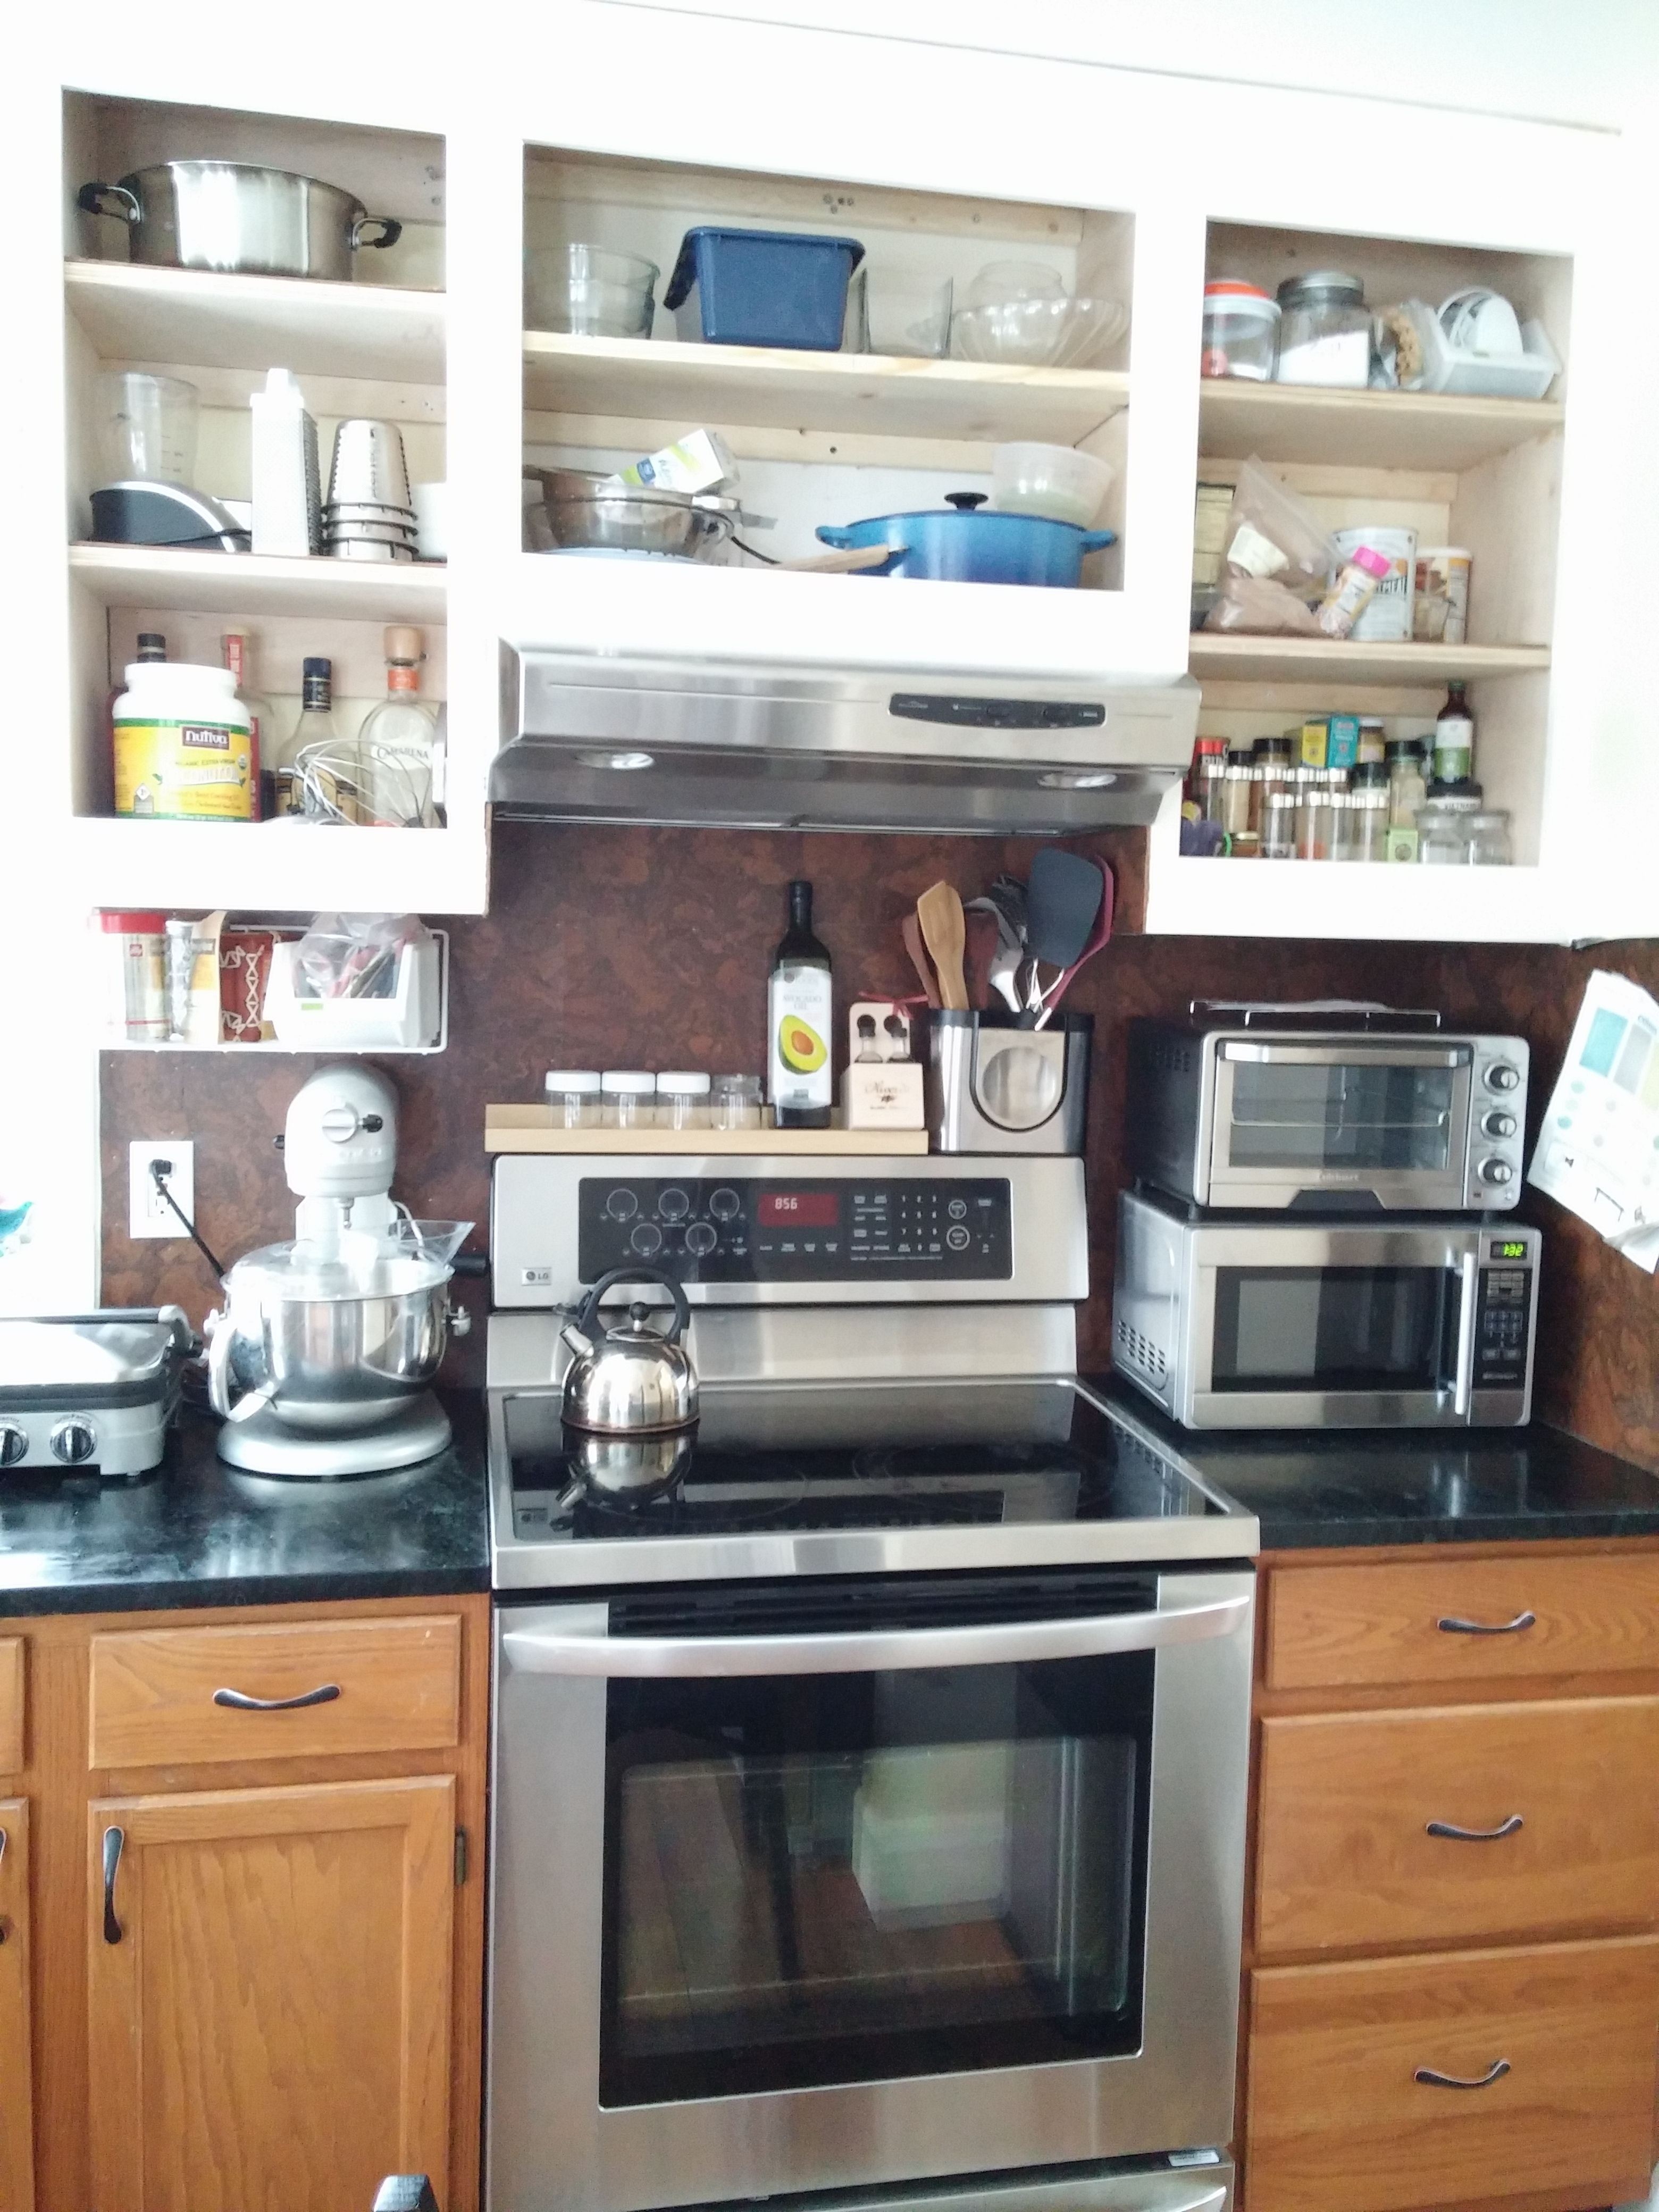 Microwave Ovens With Exhaust Fans Bestmicrowave